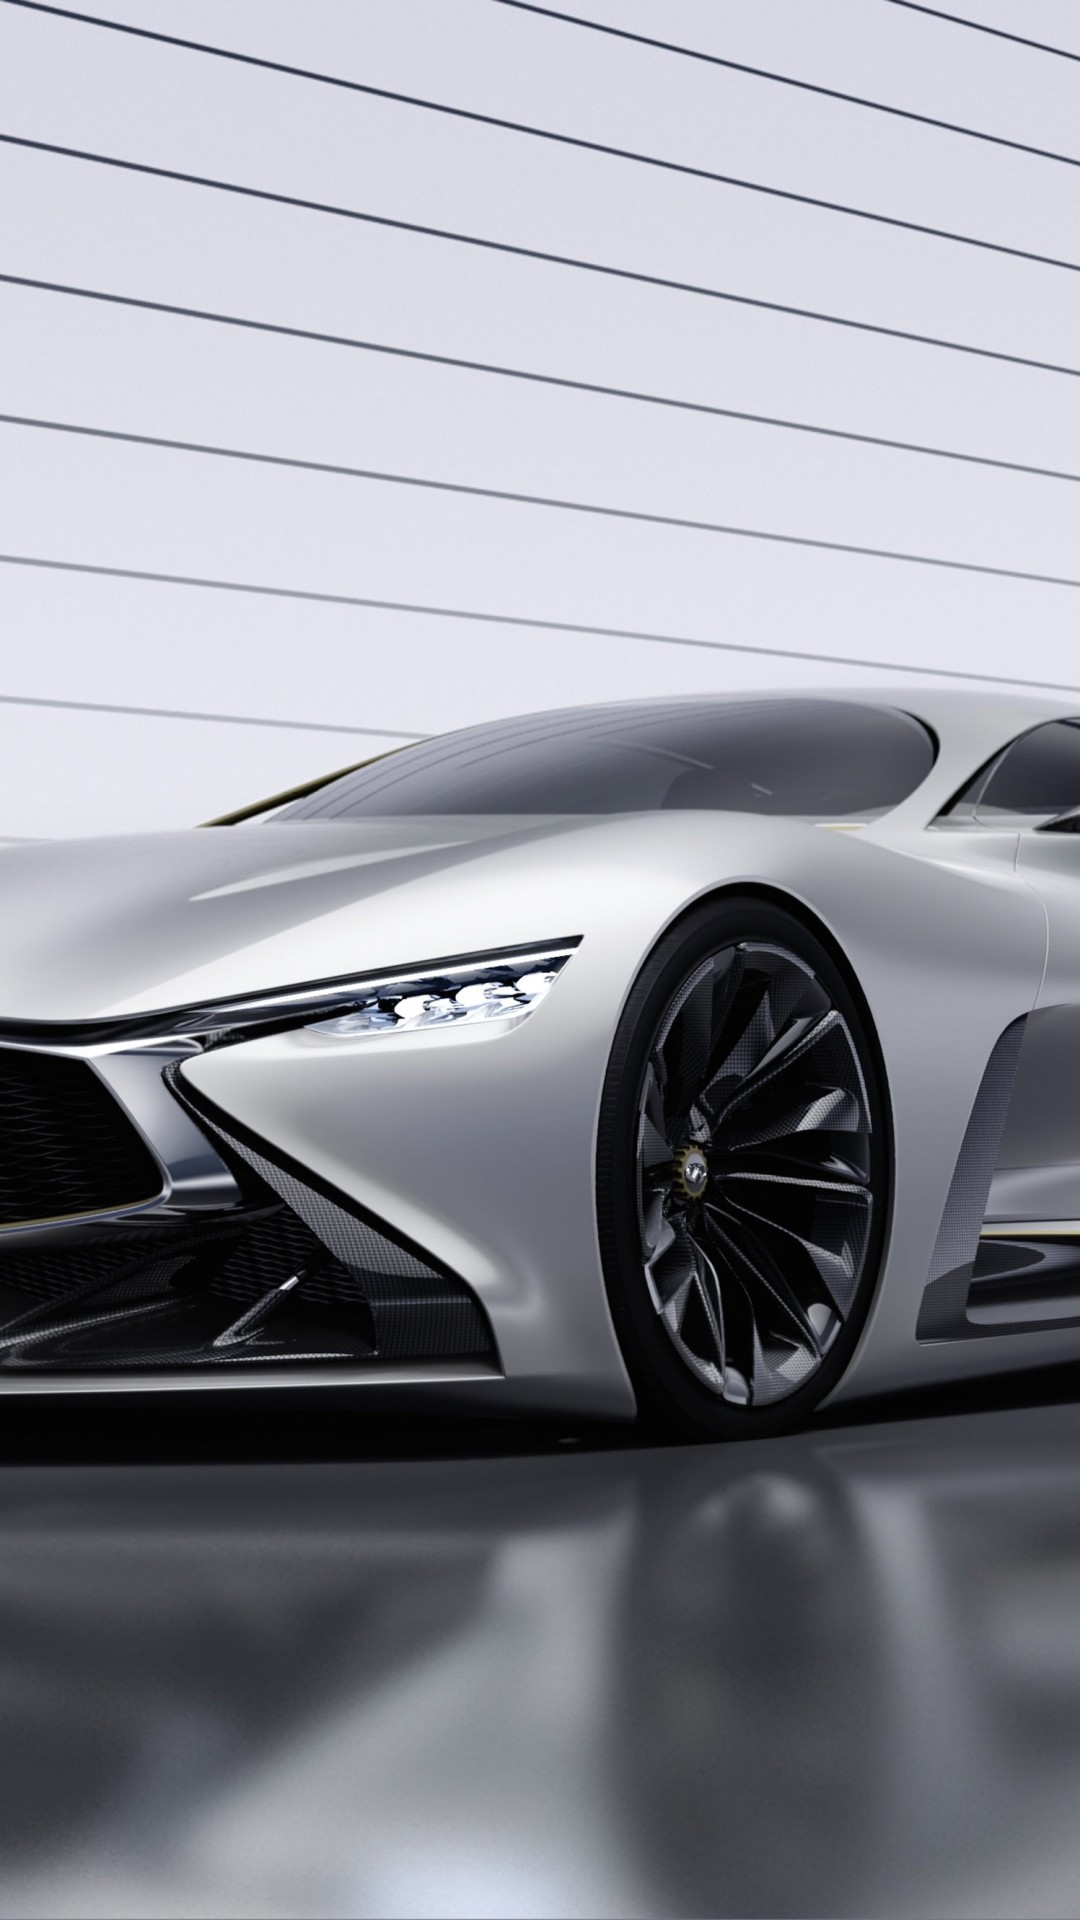 Infiniti Vision GT Concept Wallpaper for SAMSUNG Galaxy S4